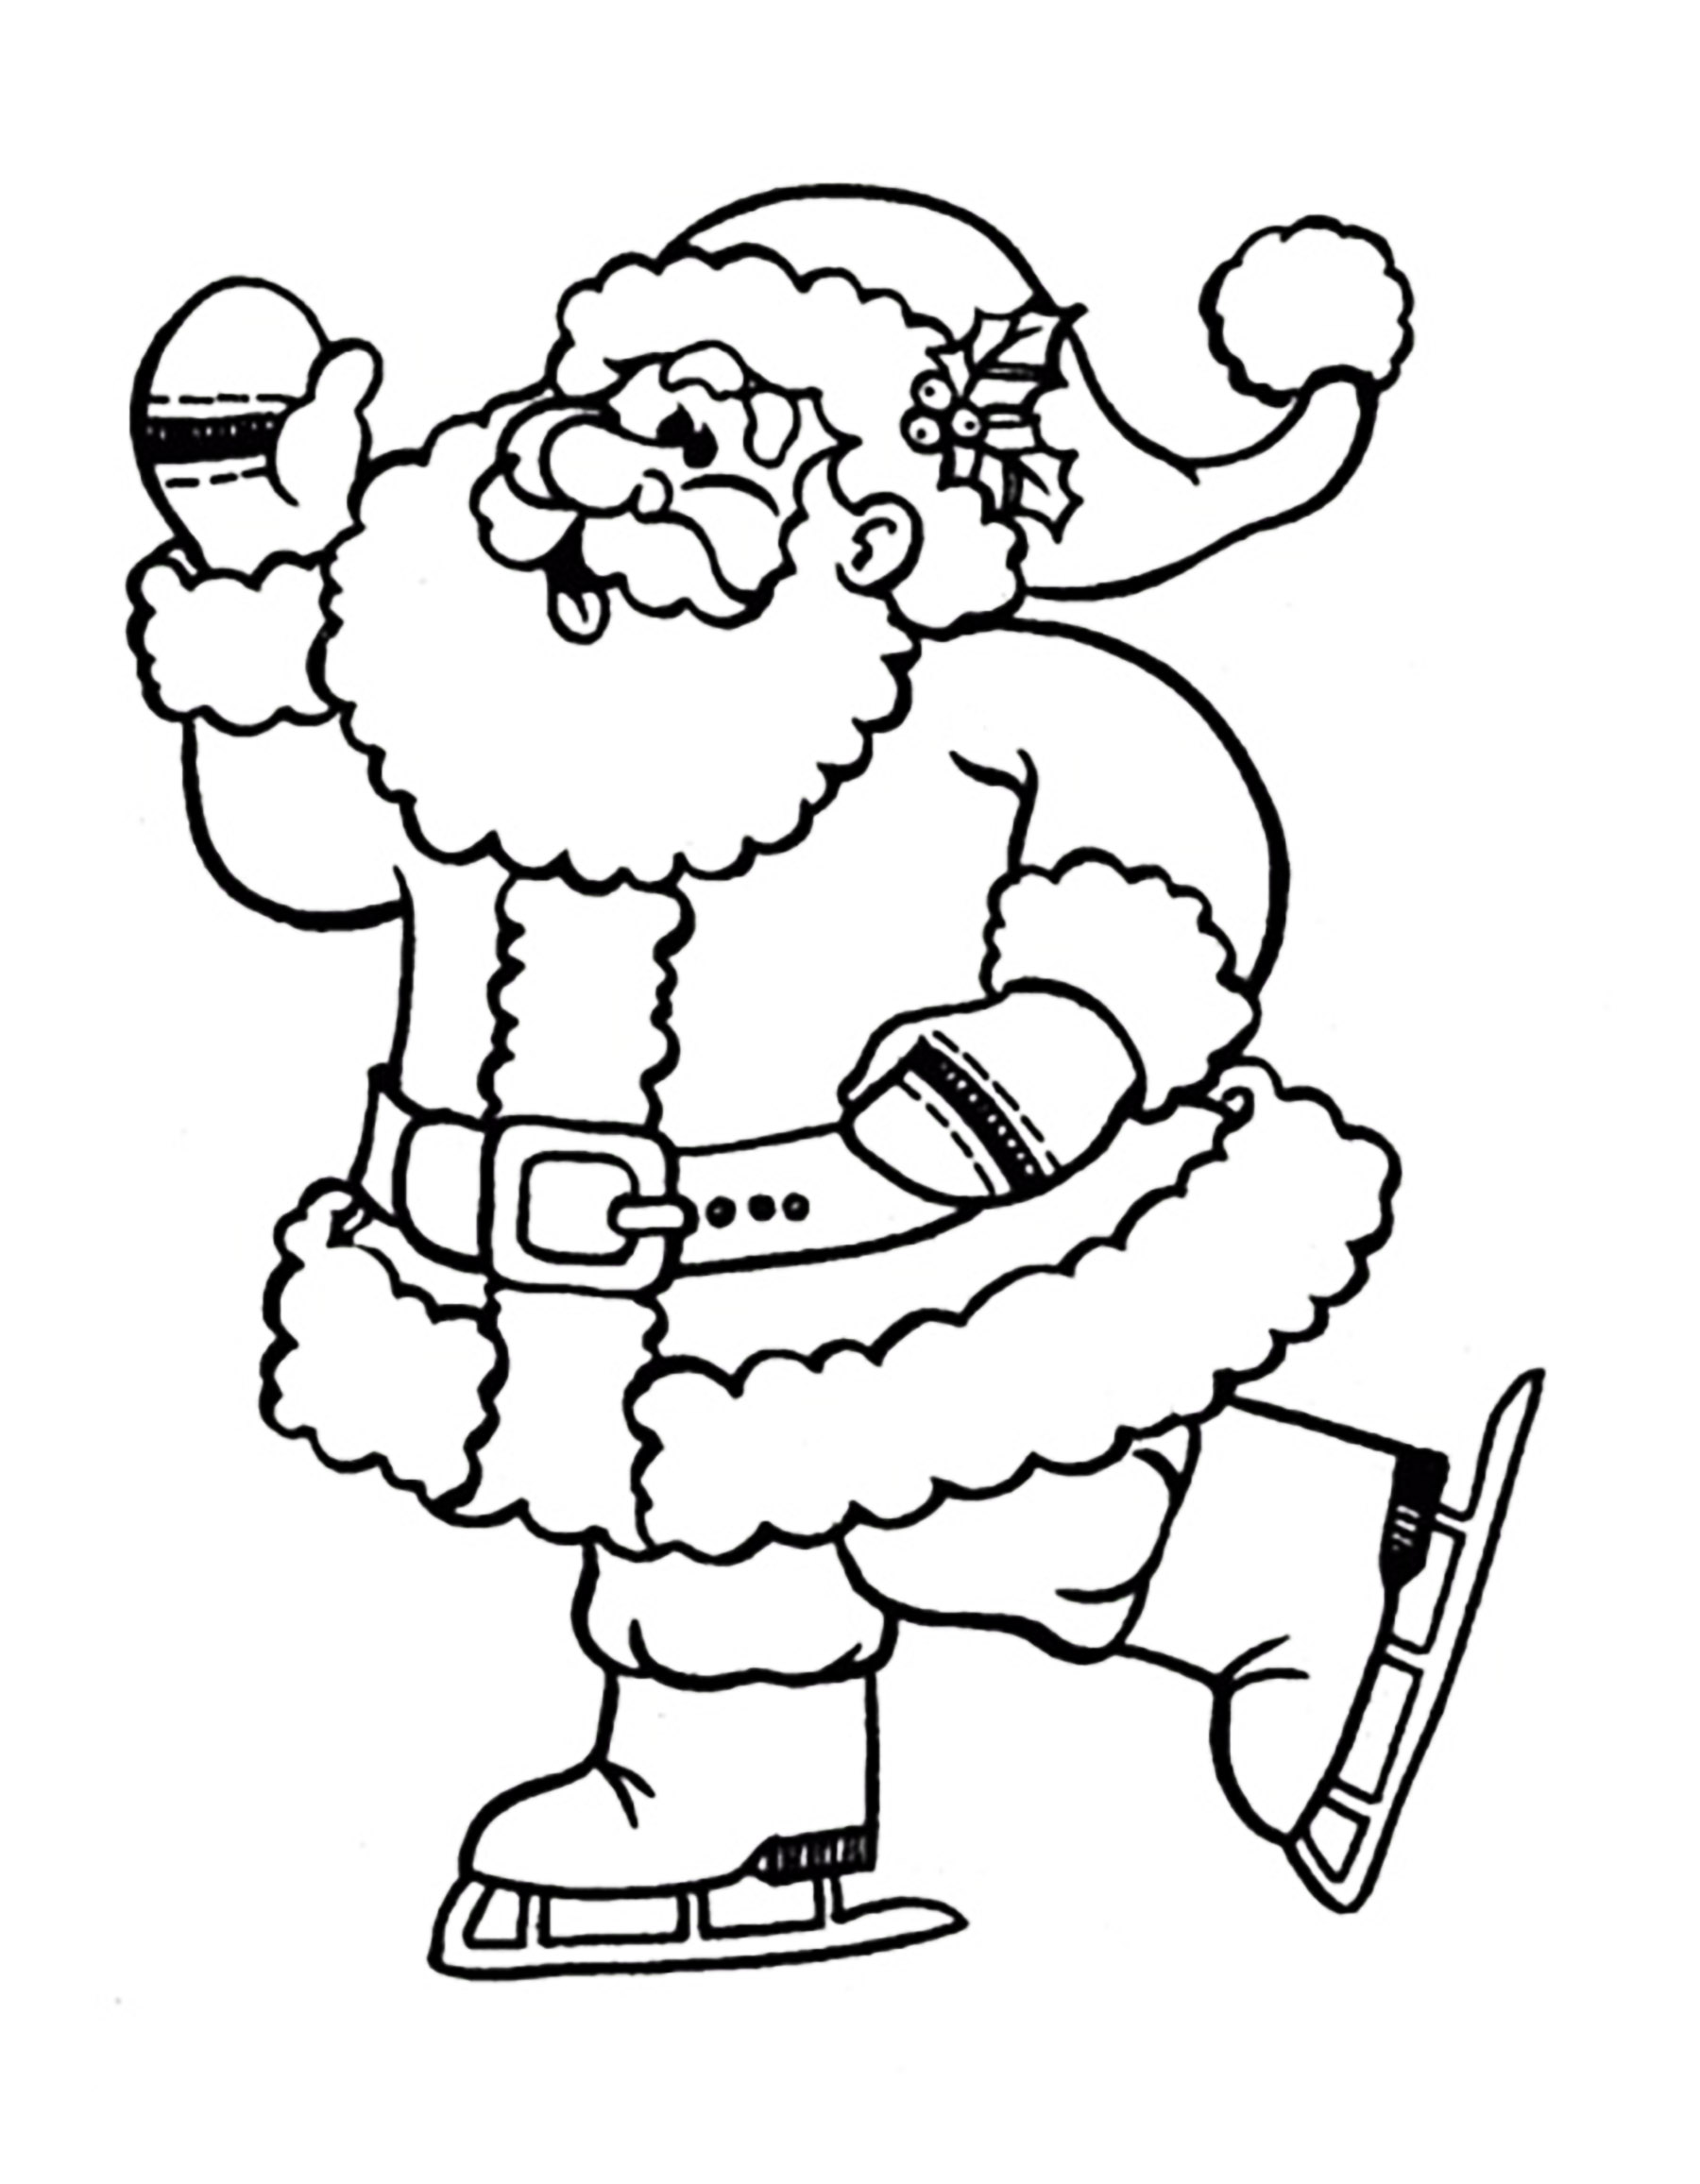 Santa claus ice skating - Christmas Coloring pages for kids to print ...